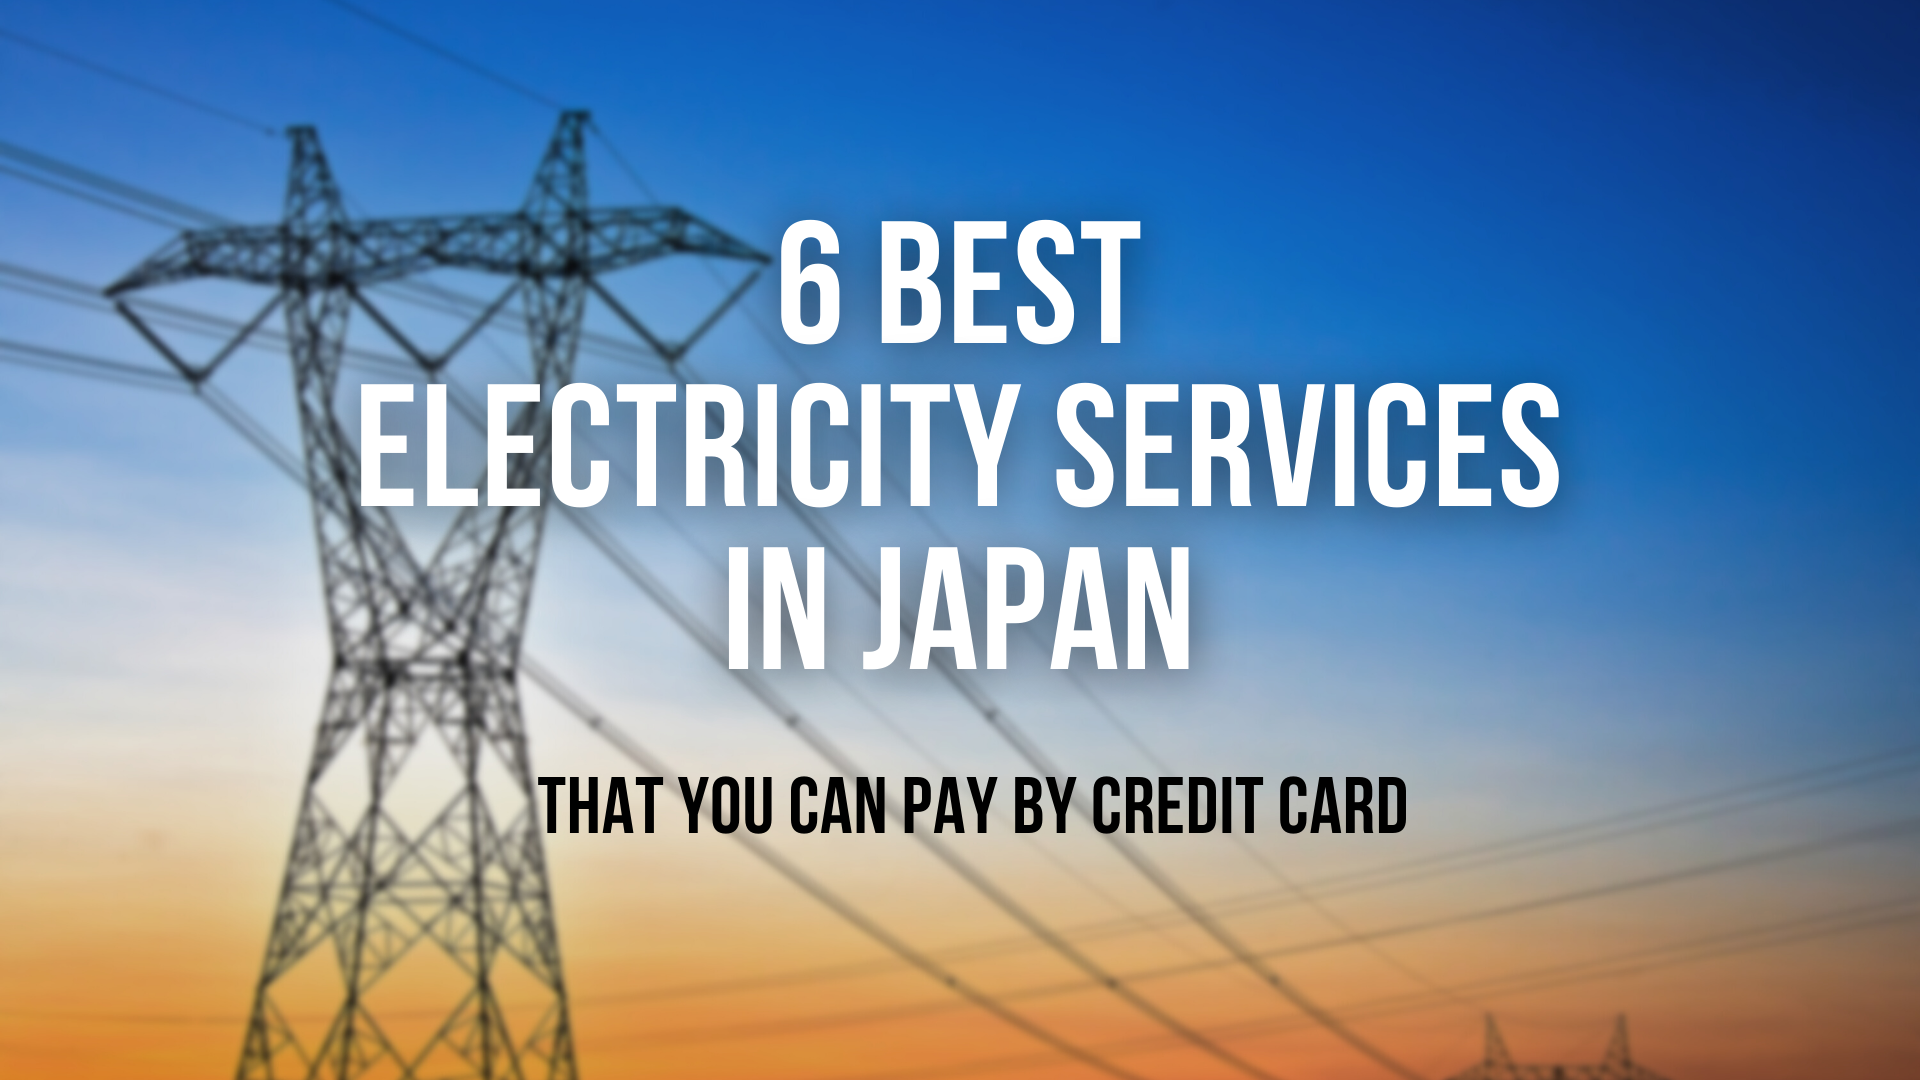 6 Electricity Services in Japan